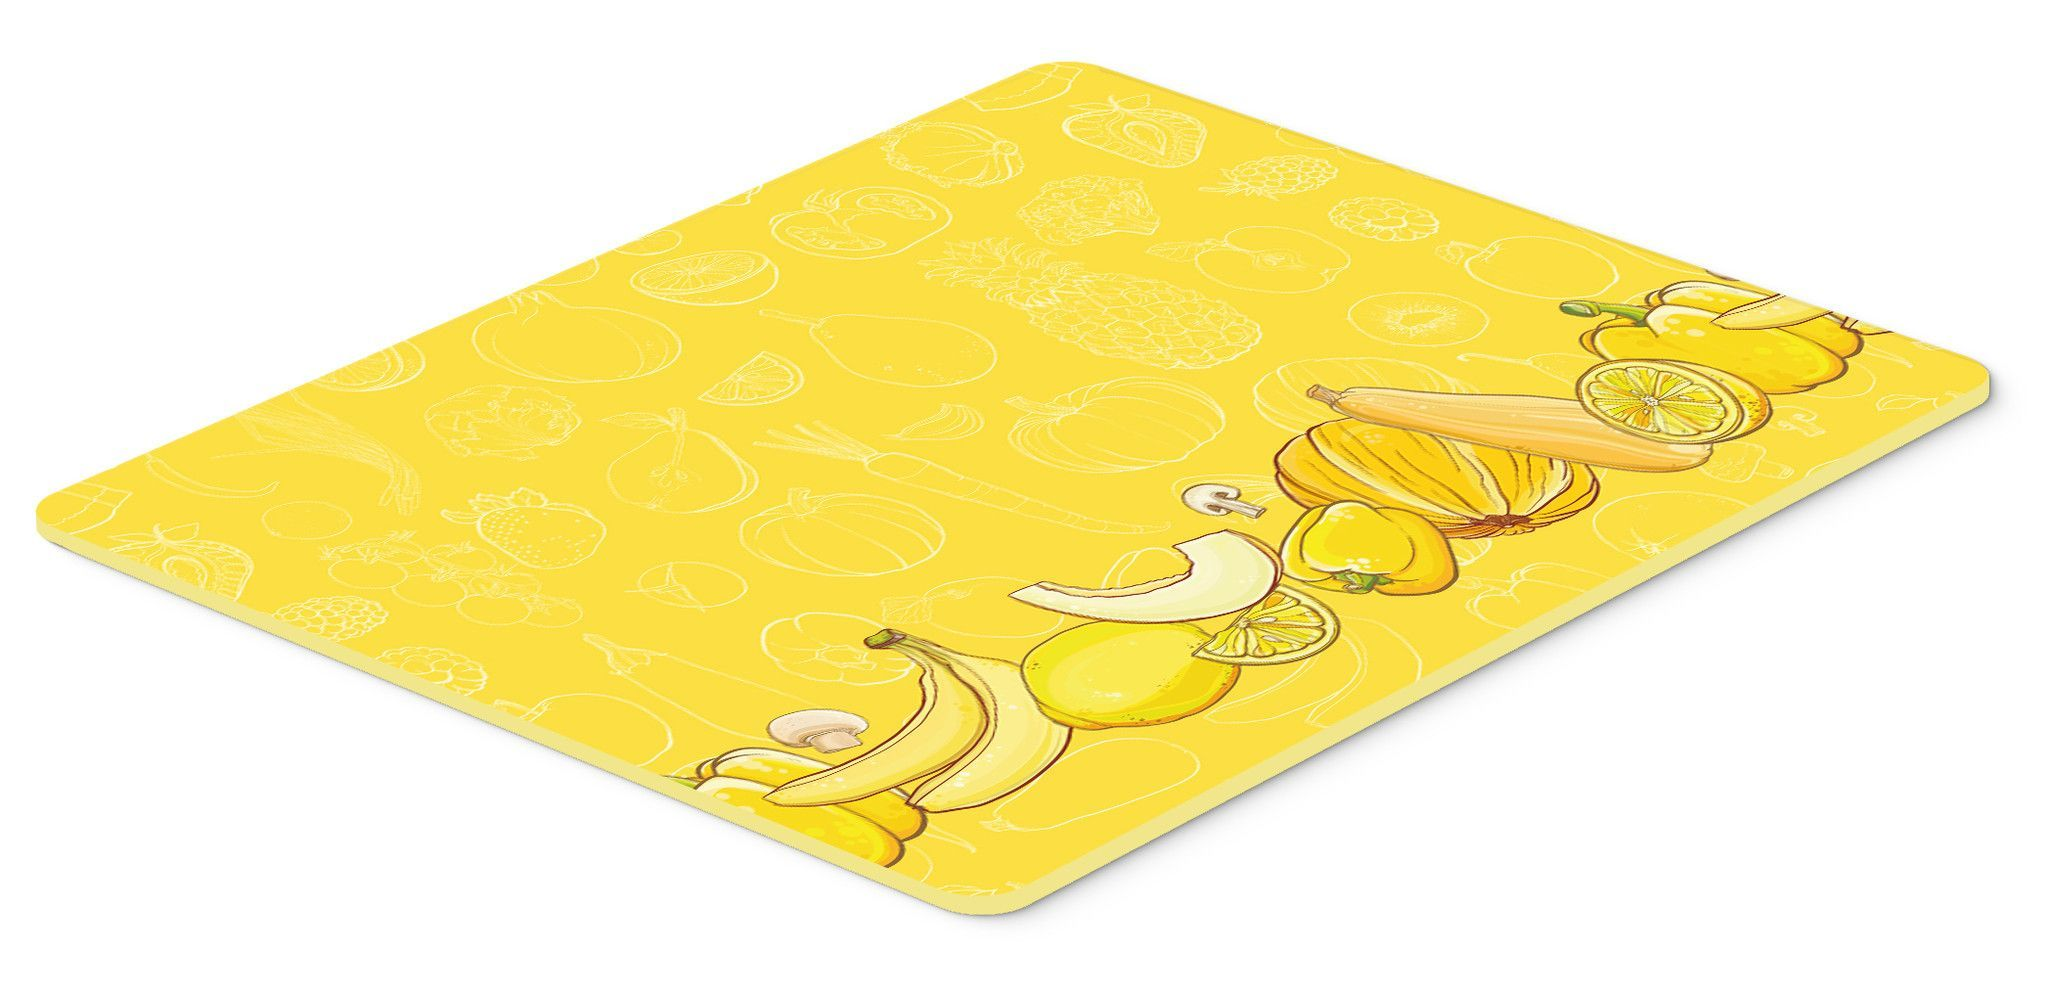 fruits and ve ables in yellow kitchen or bath mat 20x30